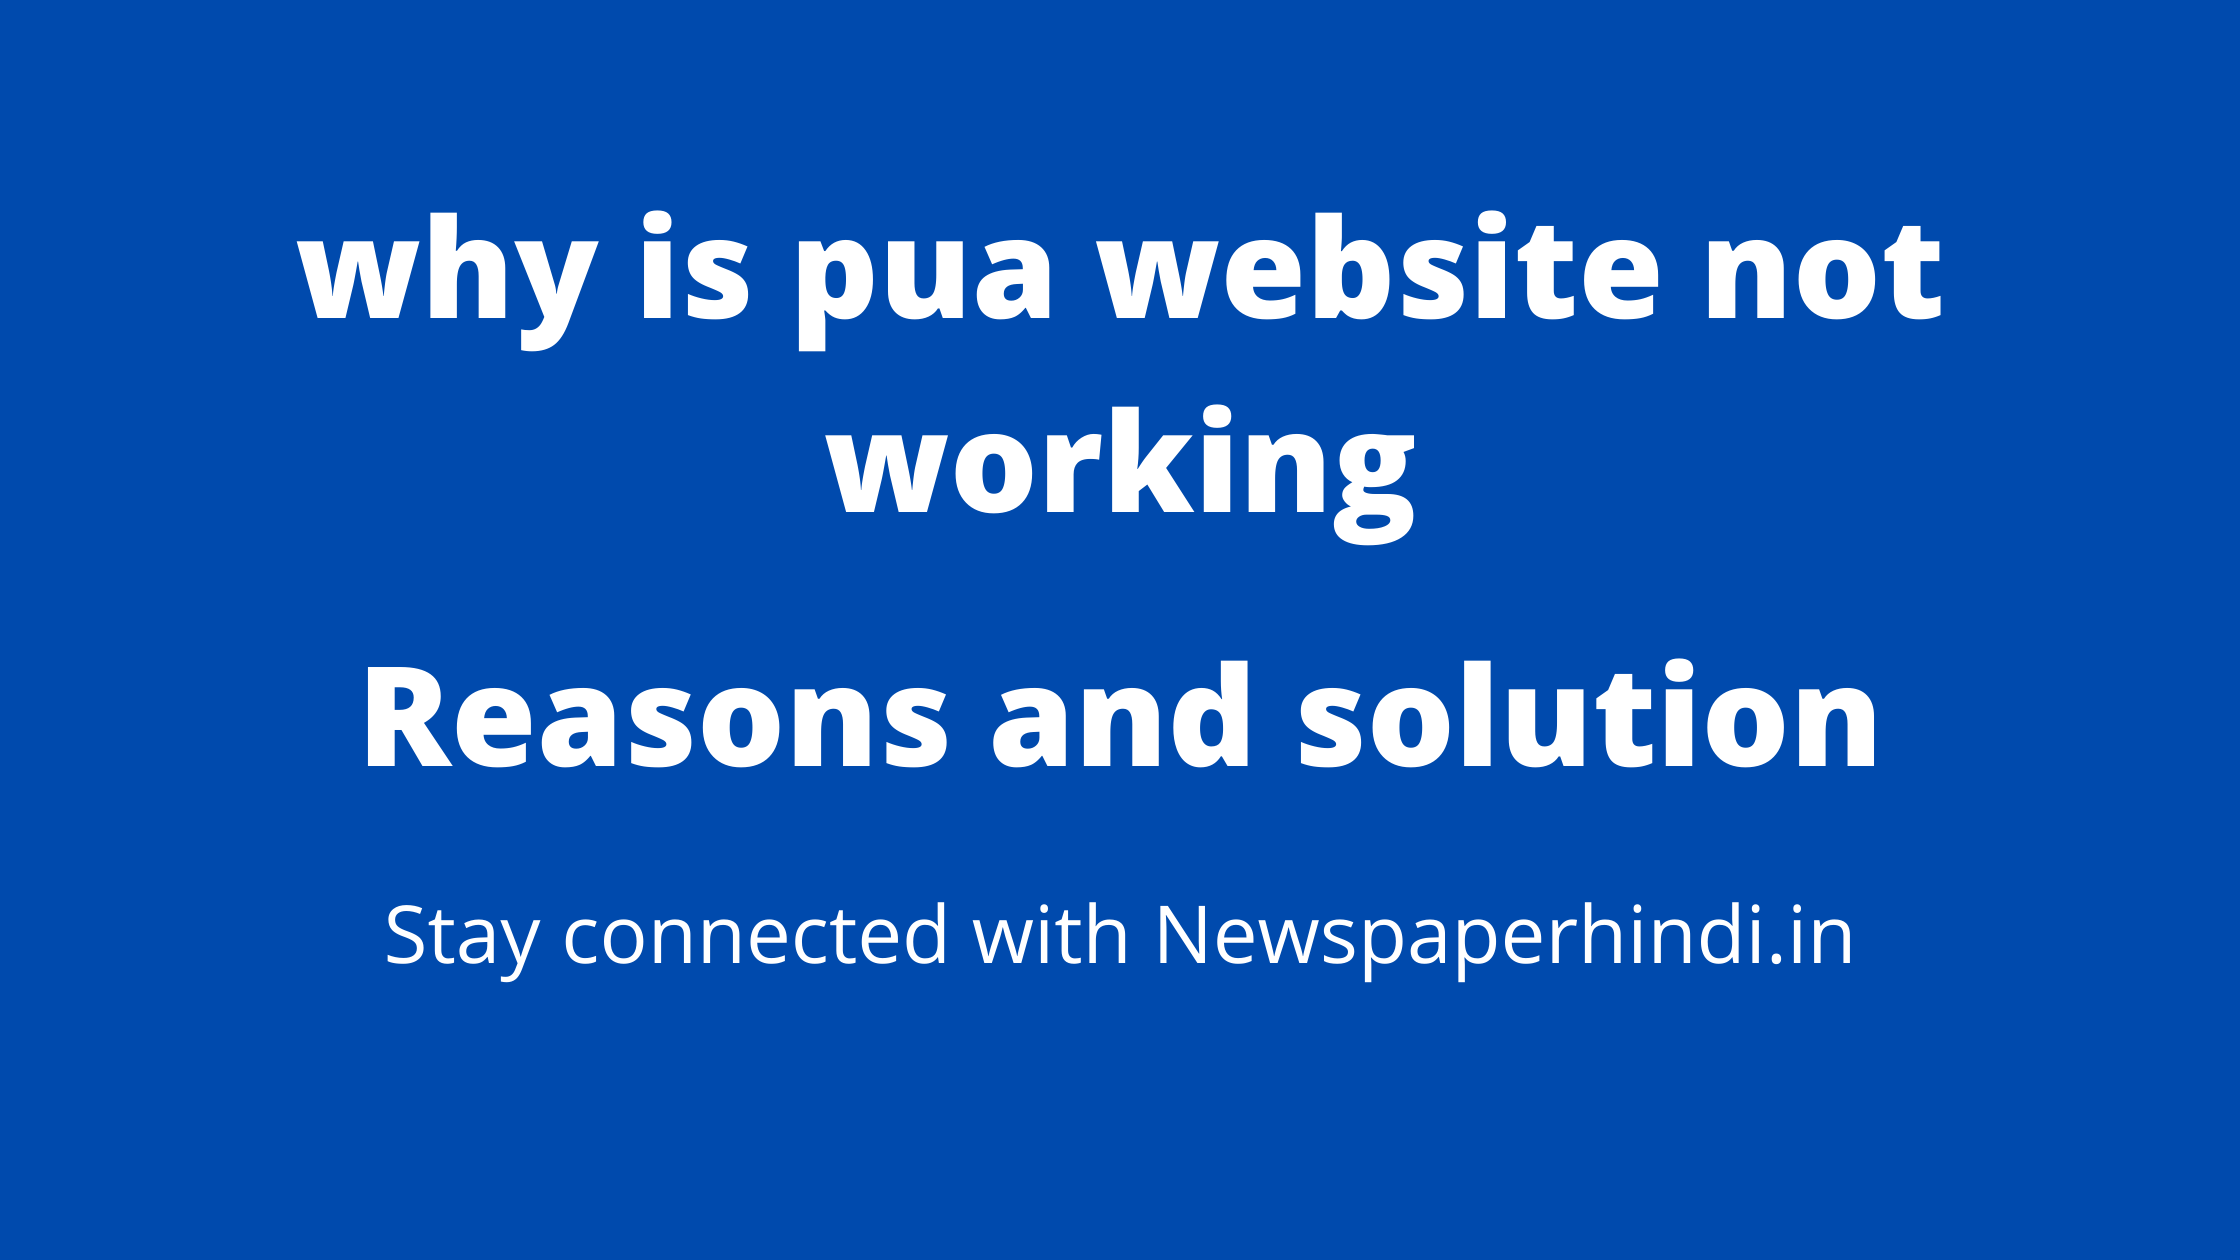 why is pua website not working